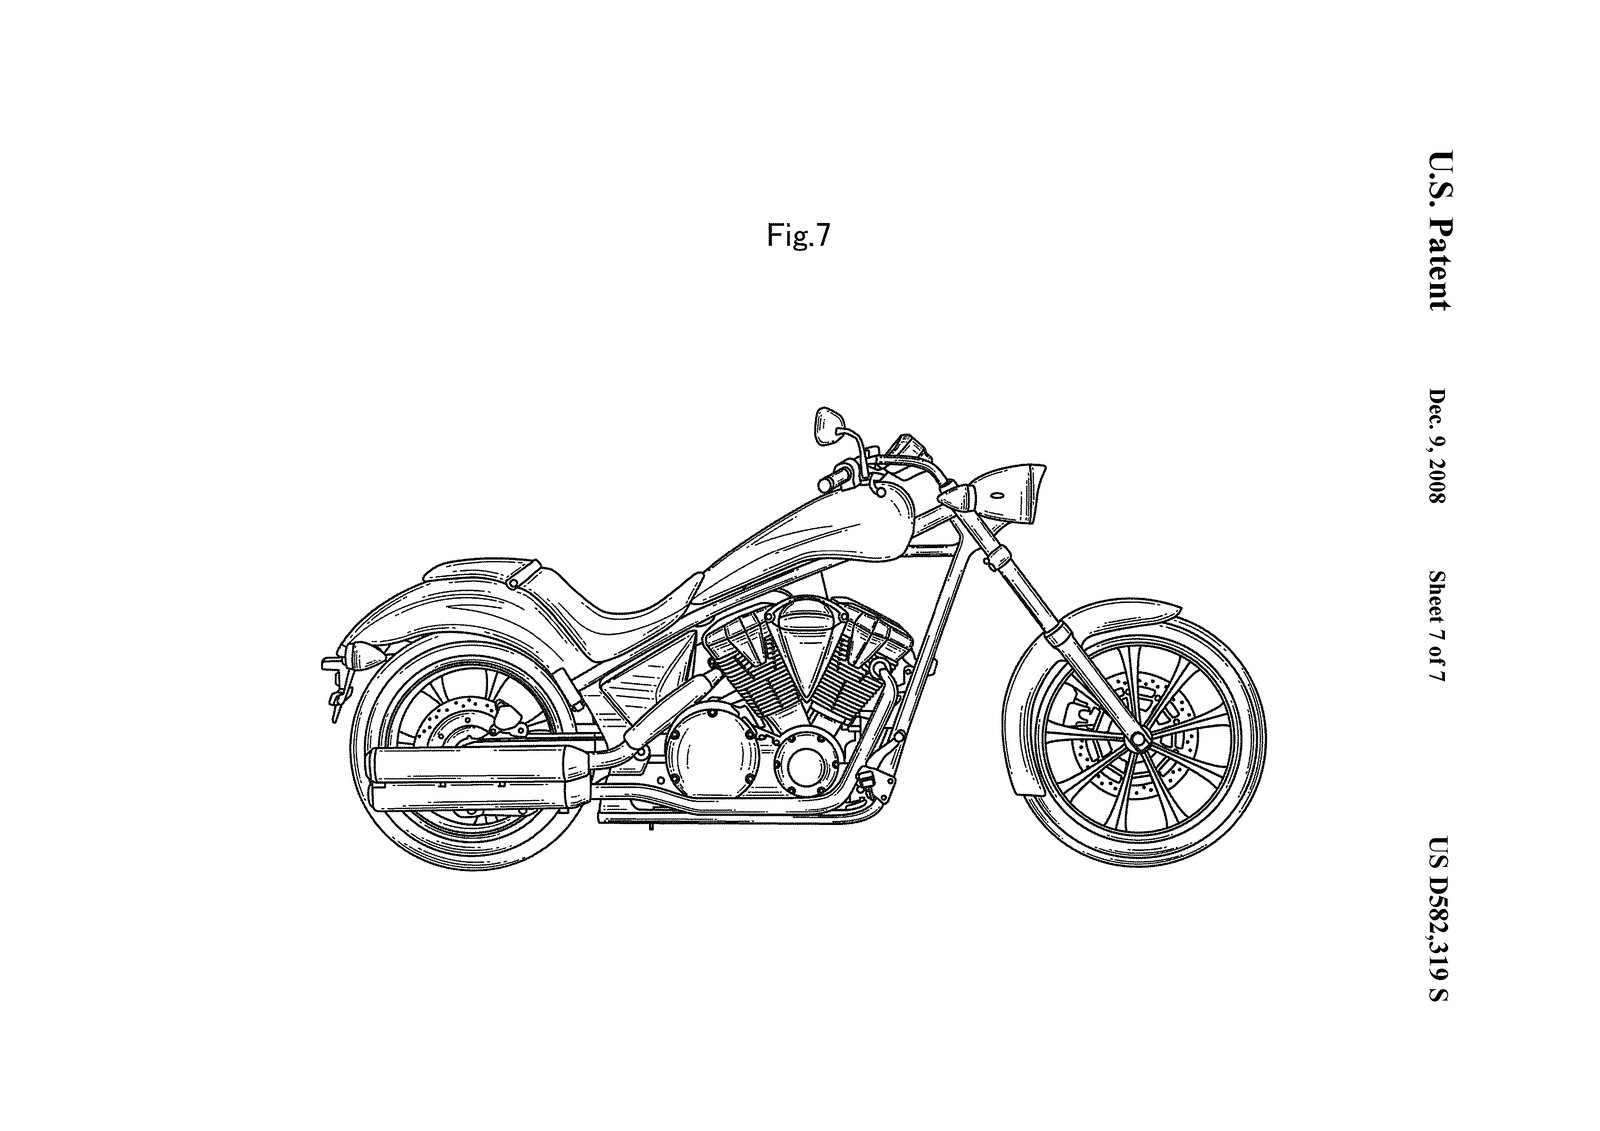 Honda Reveals Patent Images Of Their Fury News